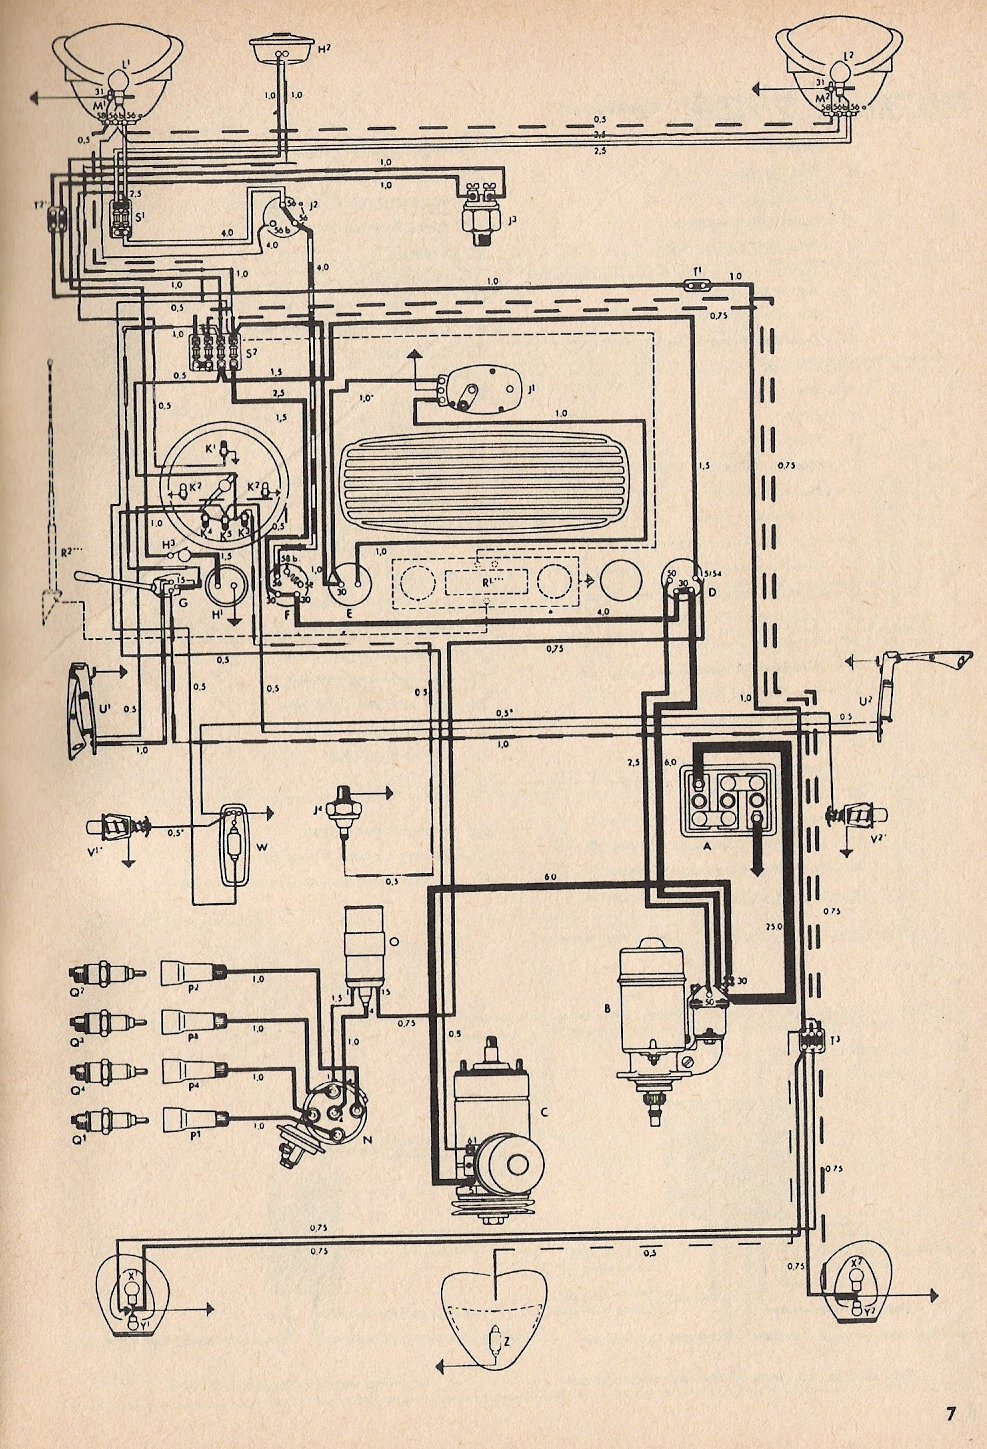 1971 vw bug fuse diagram